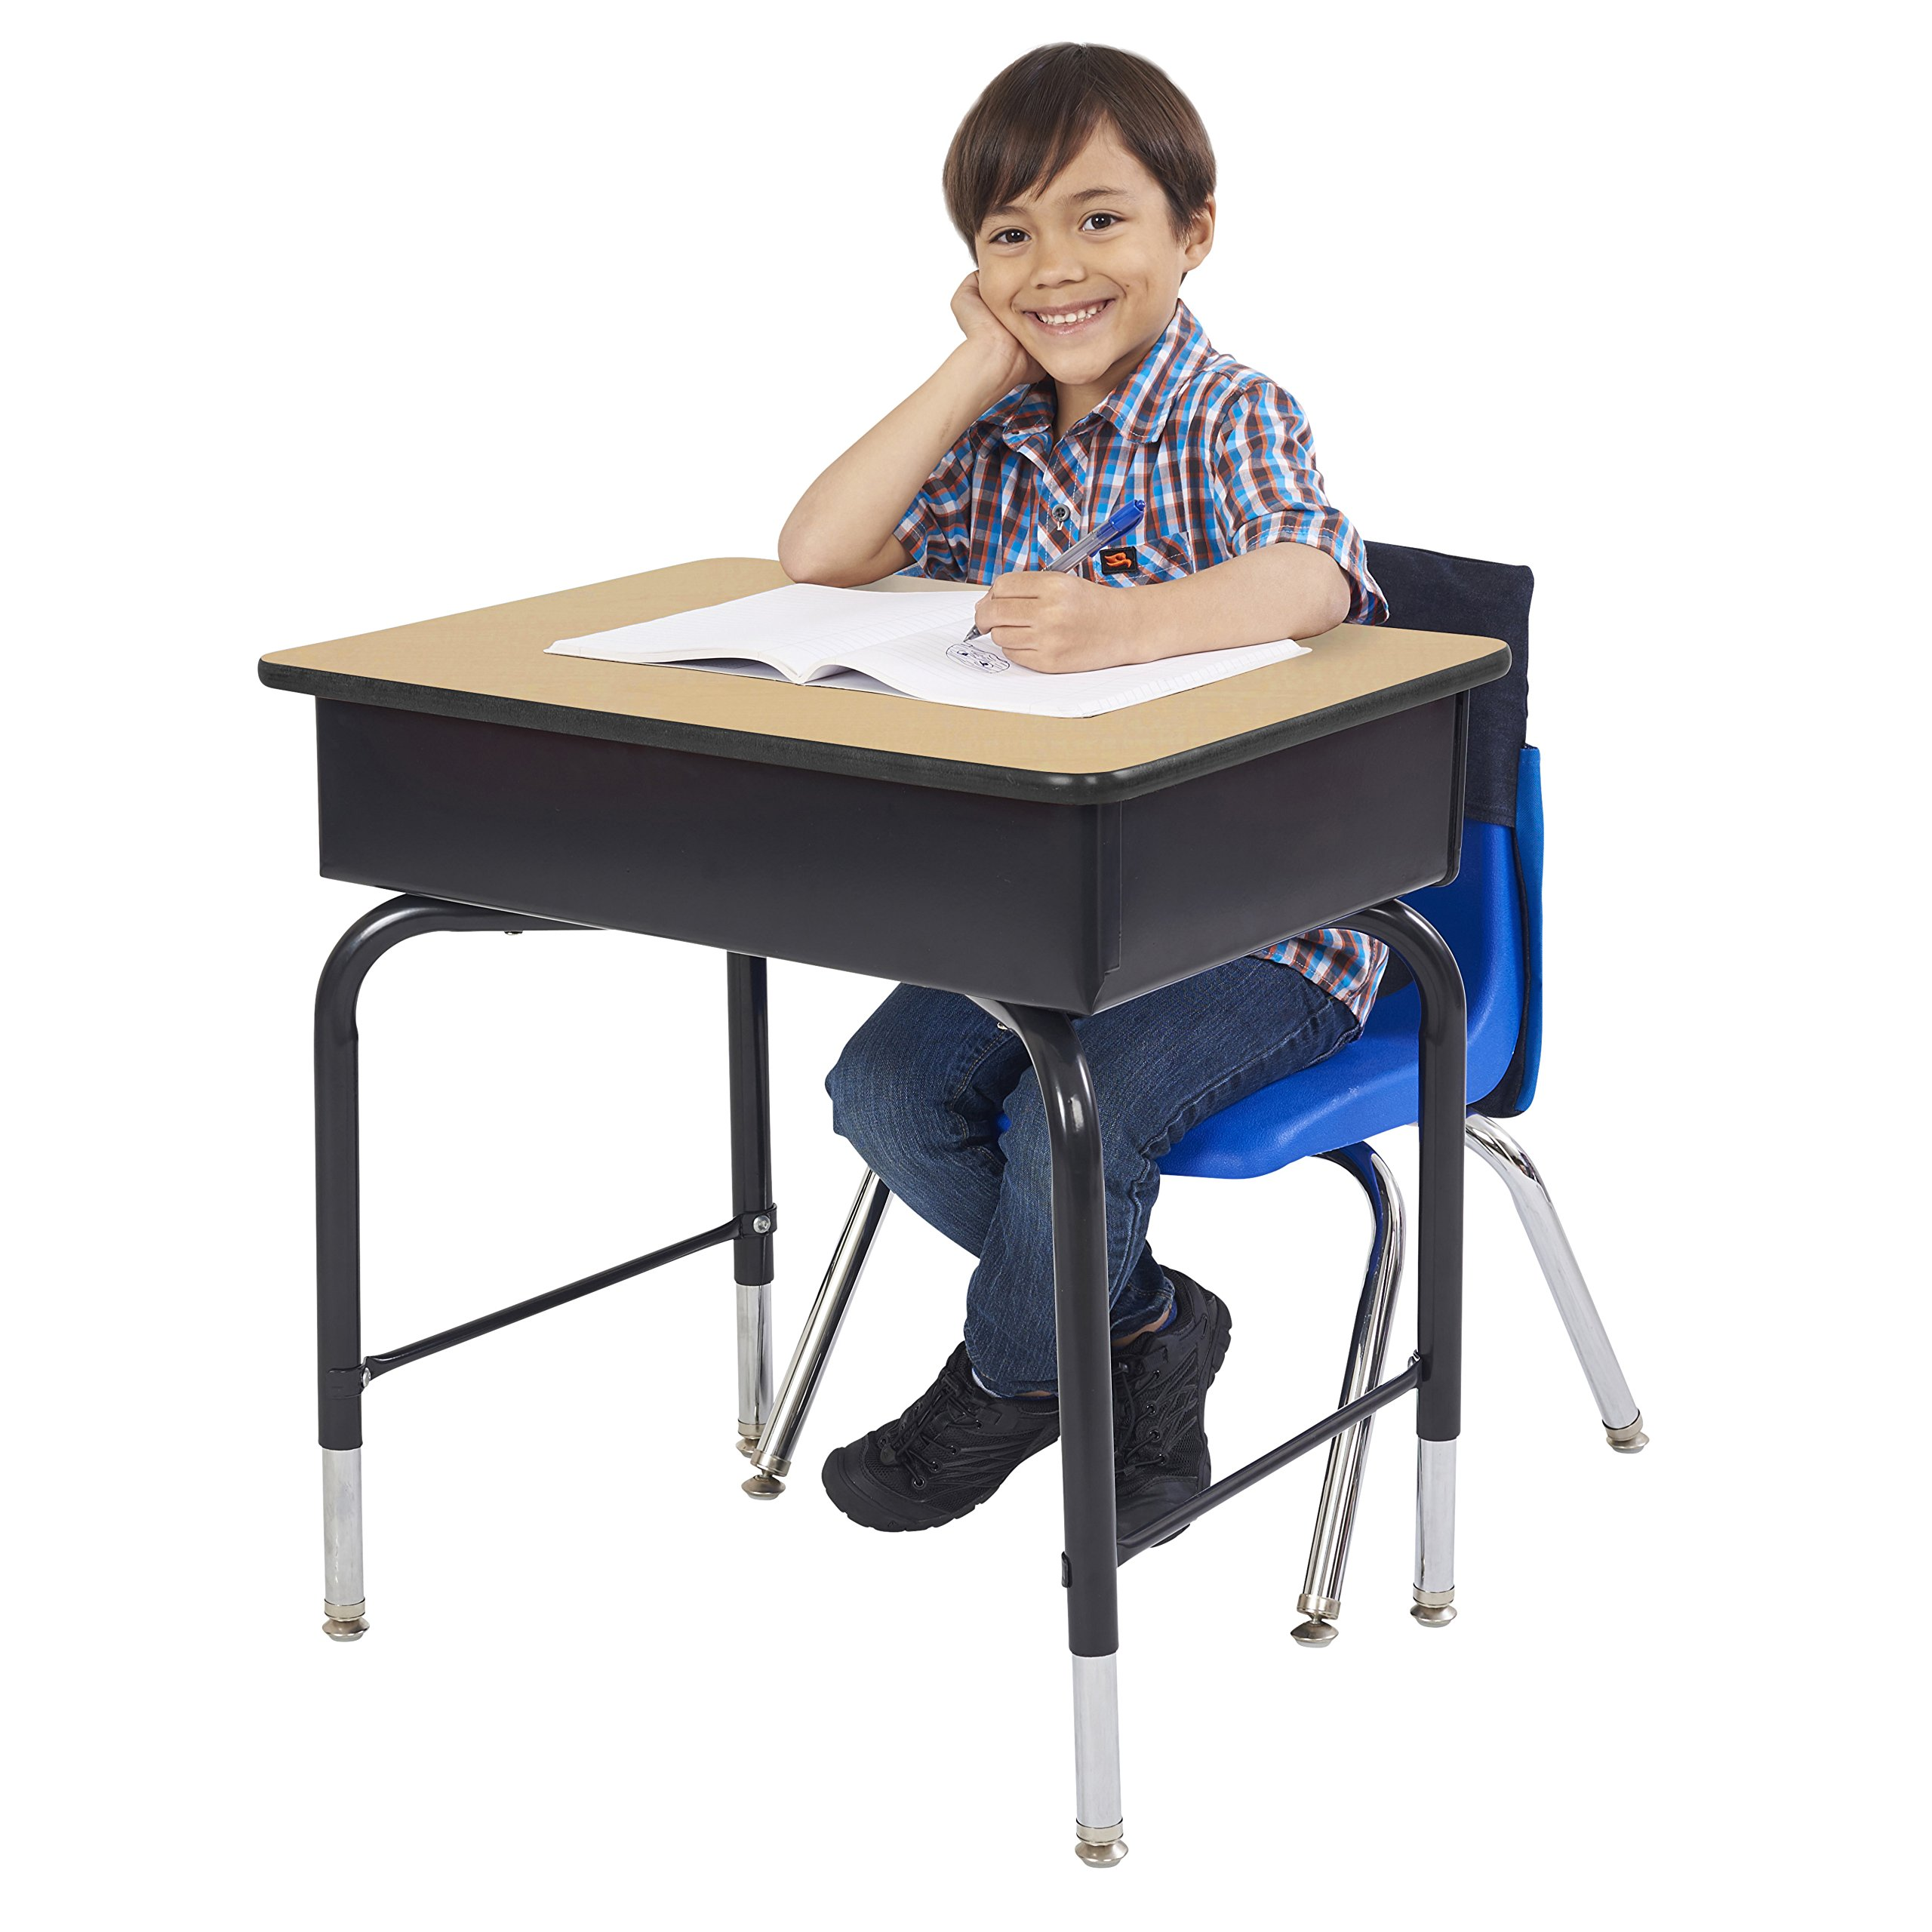 ECR4Kids ELR-24103F-MP 24'' x 18'' Adjustable Open Front Student Desk with Metal Book Box, Maple and Black by ECR4Kids